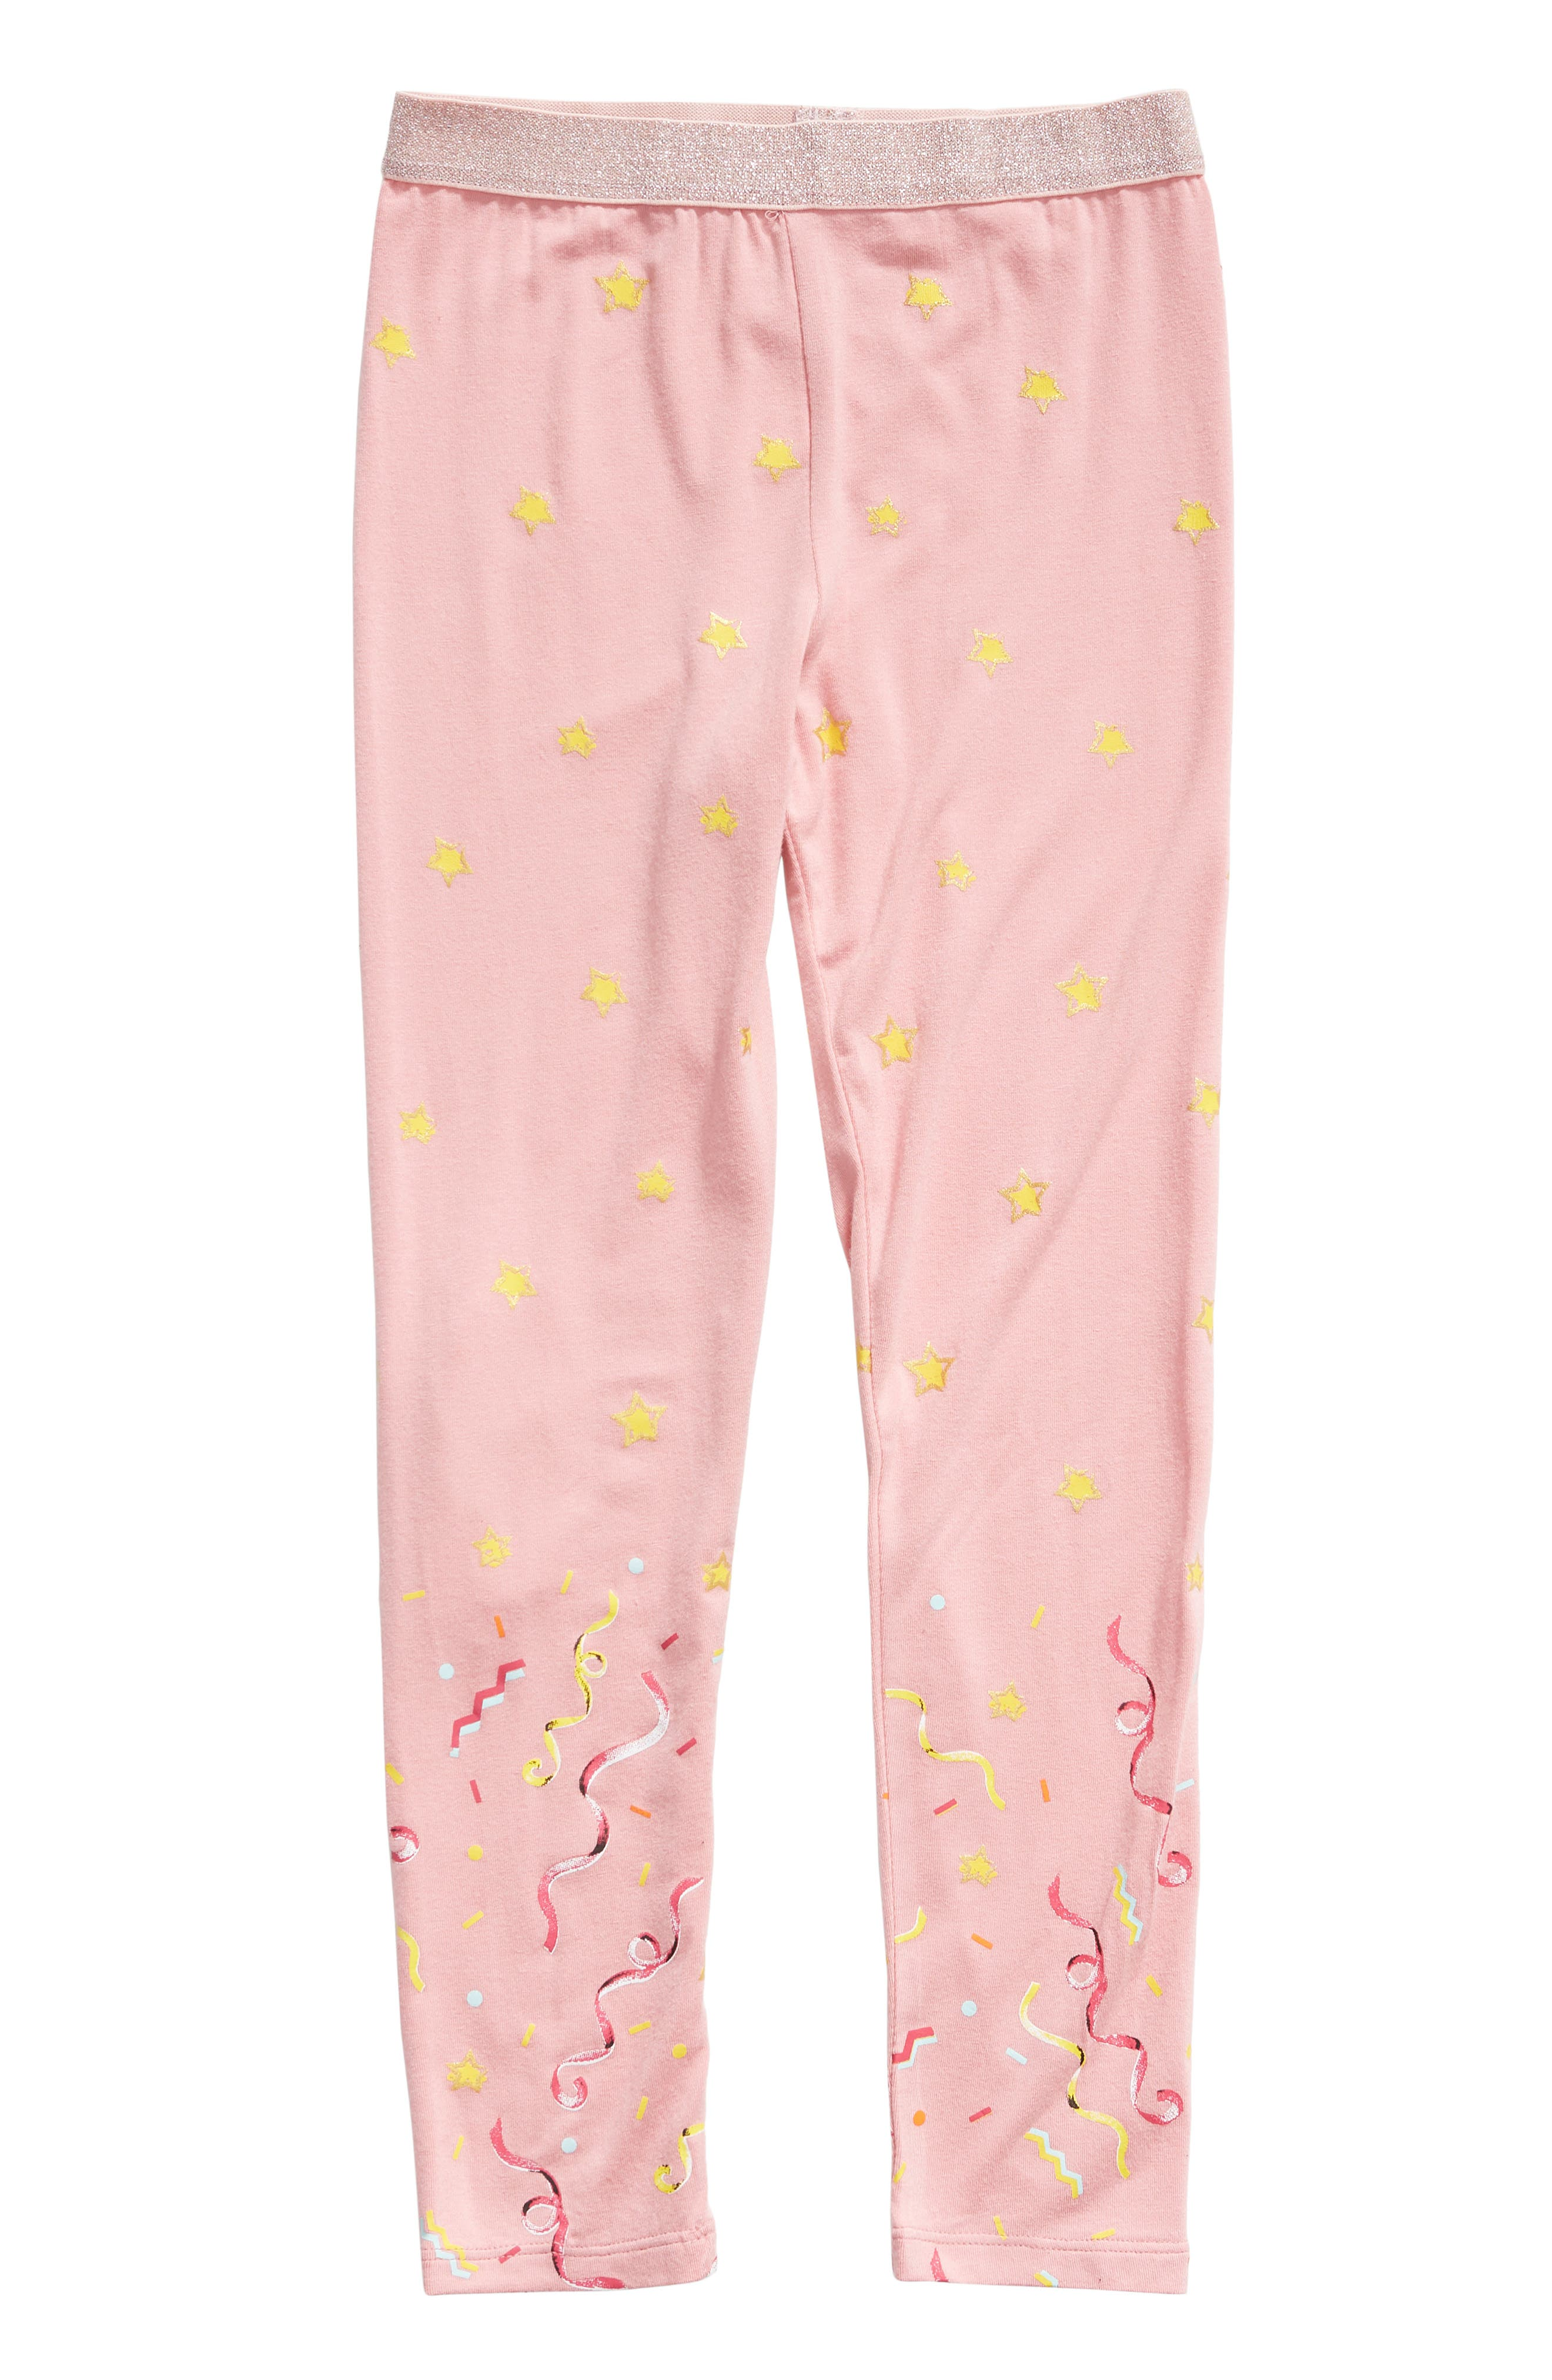 Toddler Girls Truly Me Party Leggings Size 3T  Pink